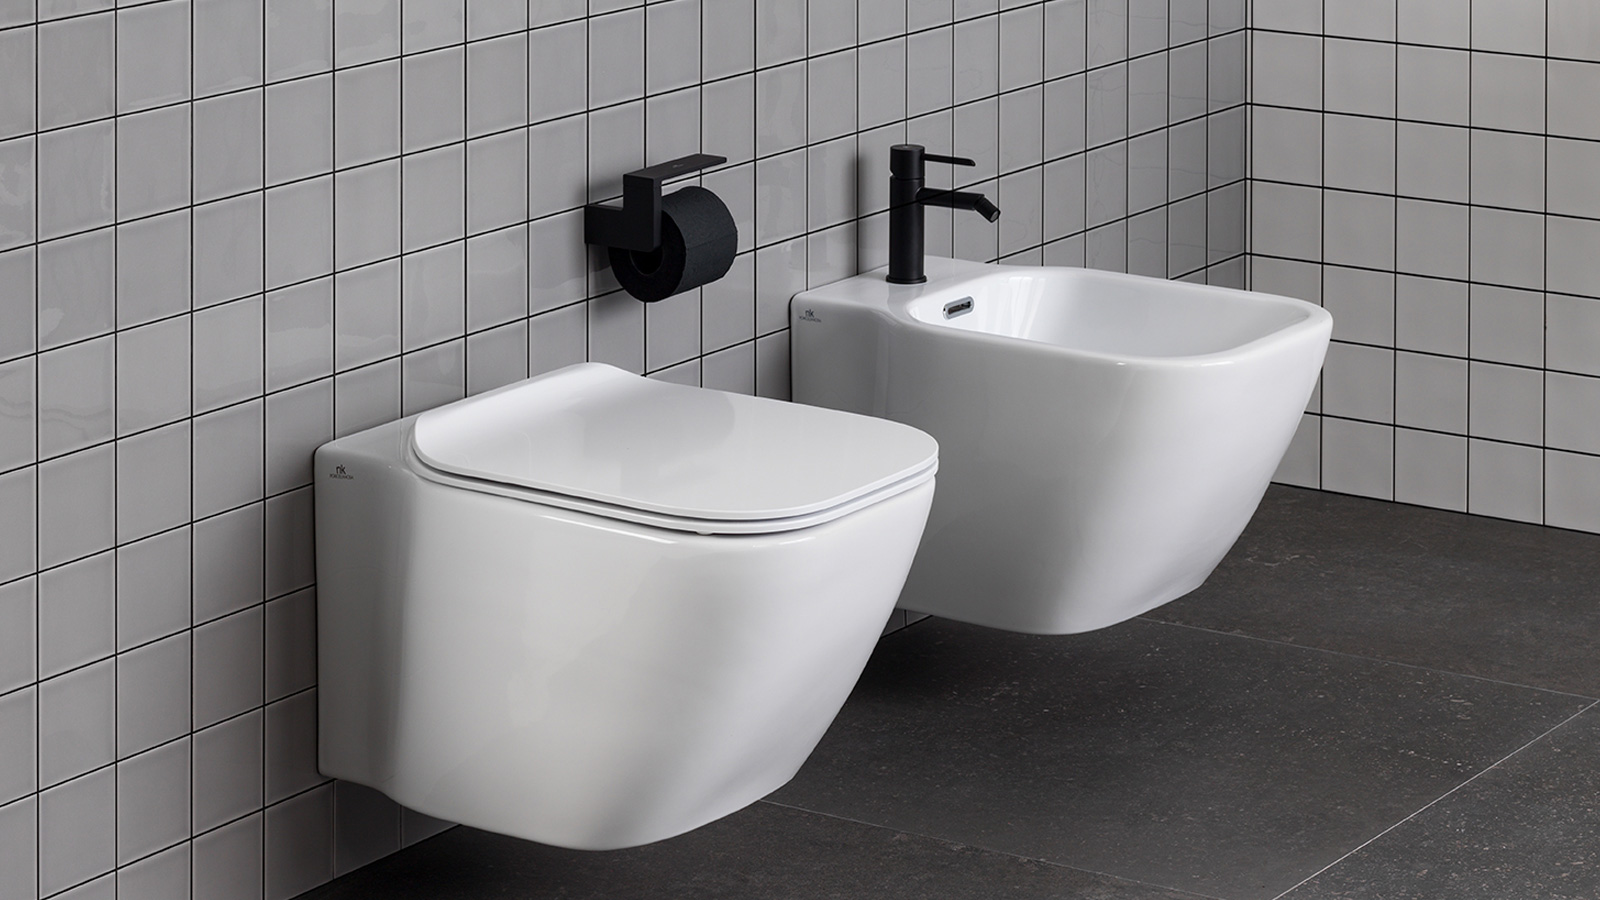 Rimless toilets: technology for effective bowl cleaning